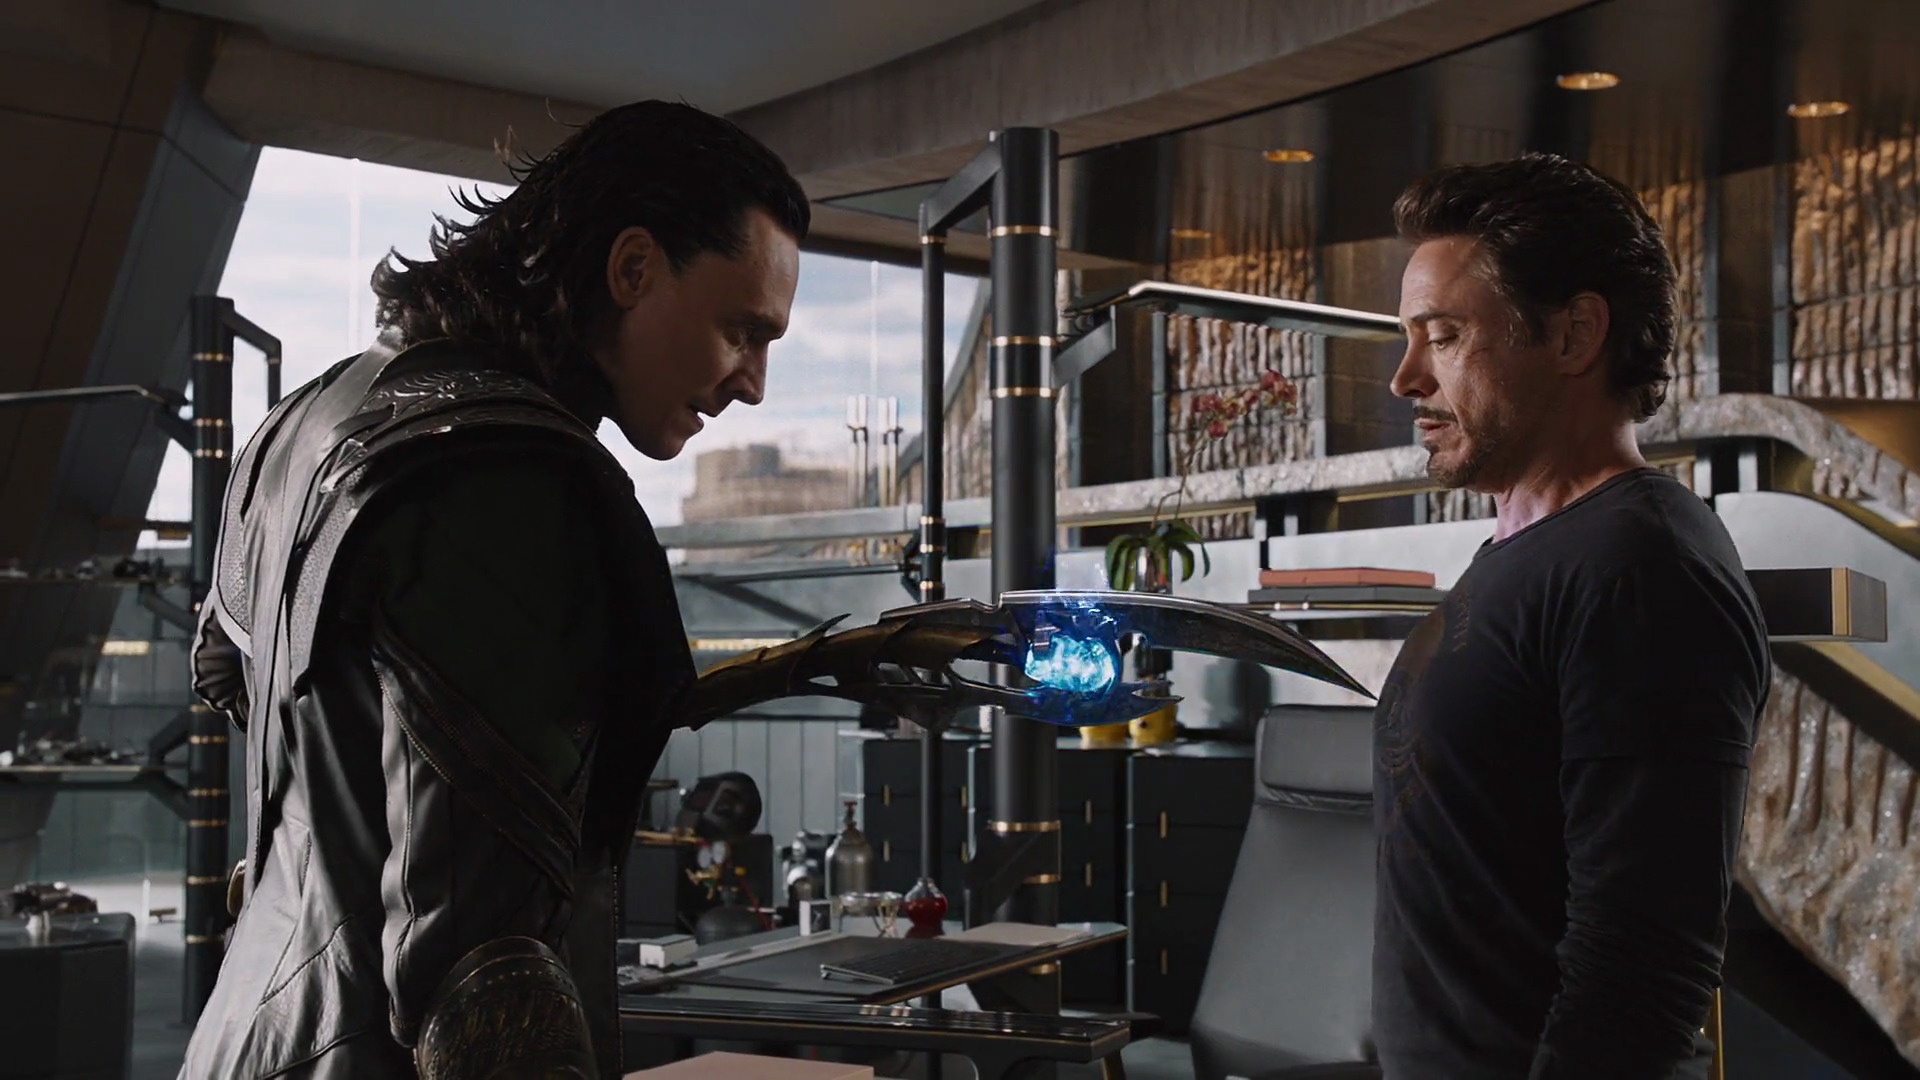 http://www.caps.media/201/2-avengers/full/avengers-movie-screencaps.com-12039.jpg